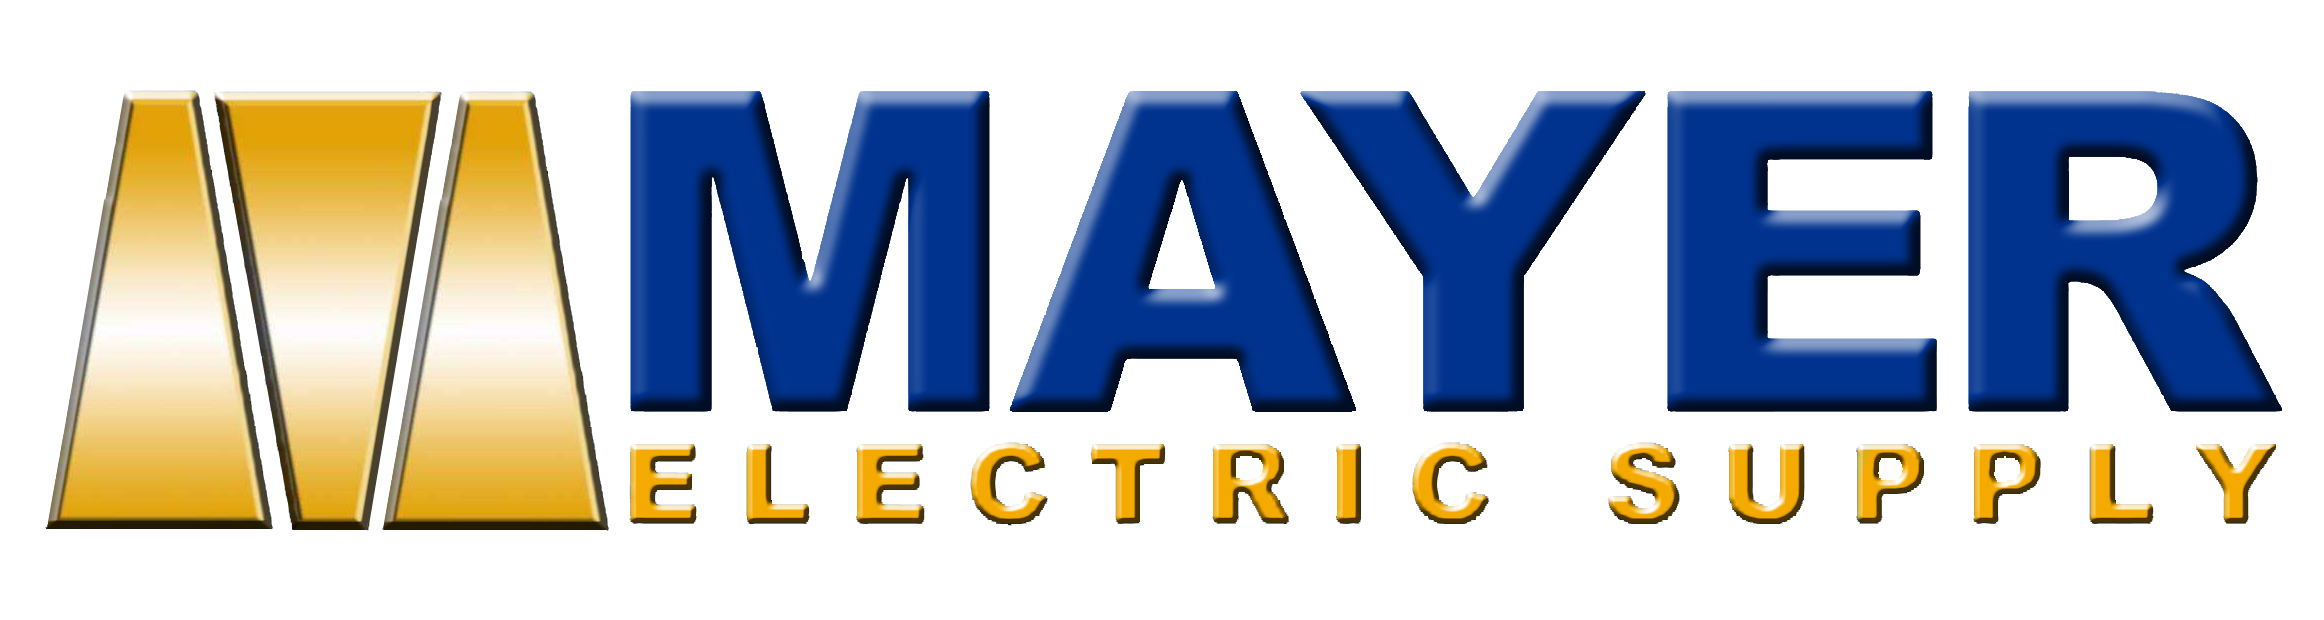 Mayer Electric Supply Co., Inc. in Charleston, SC. Distributor of industrial, commercial & residential electrical equipment & supplies, including lighting, tools, communication products & factory automation equipment.